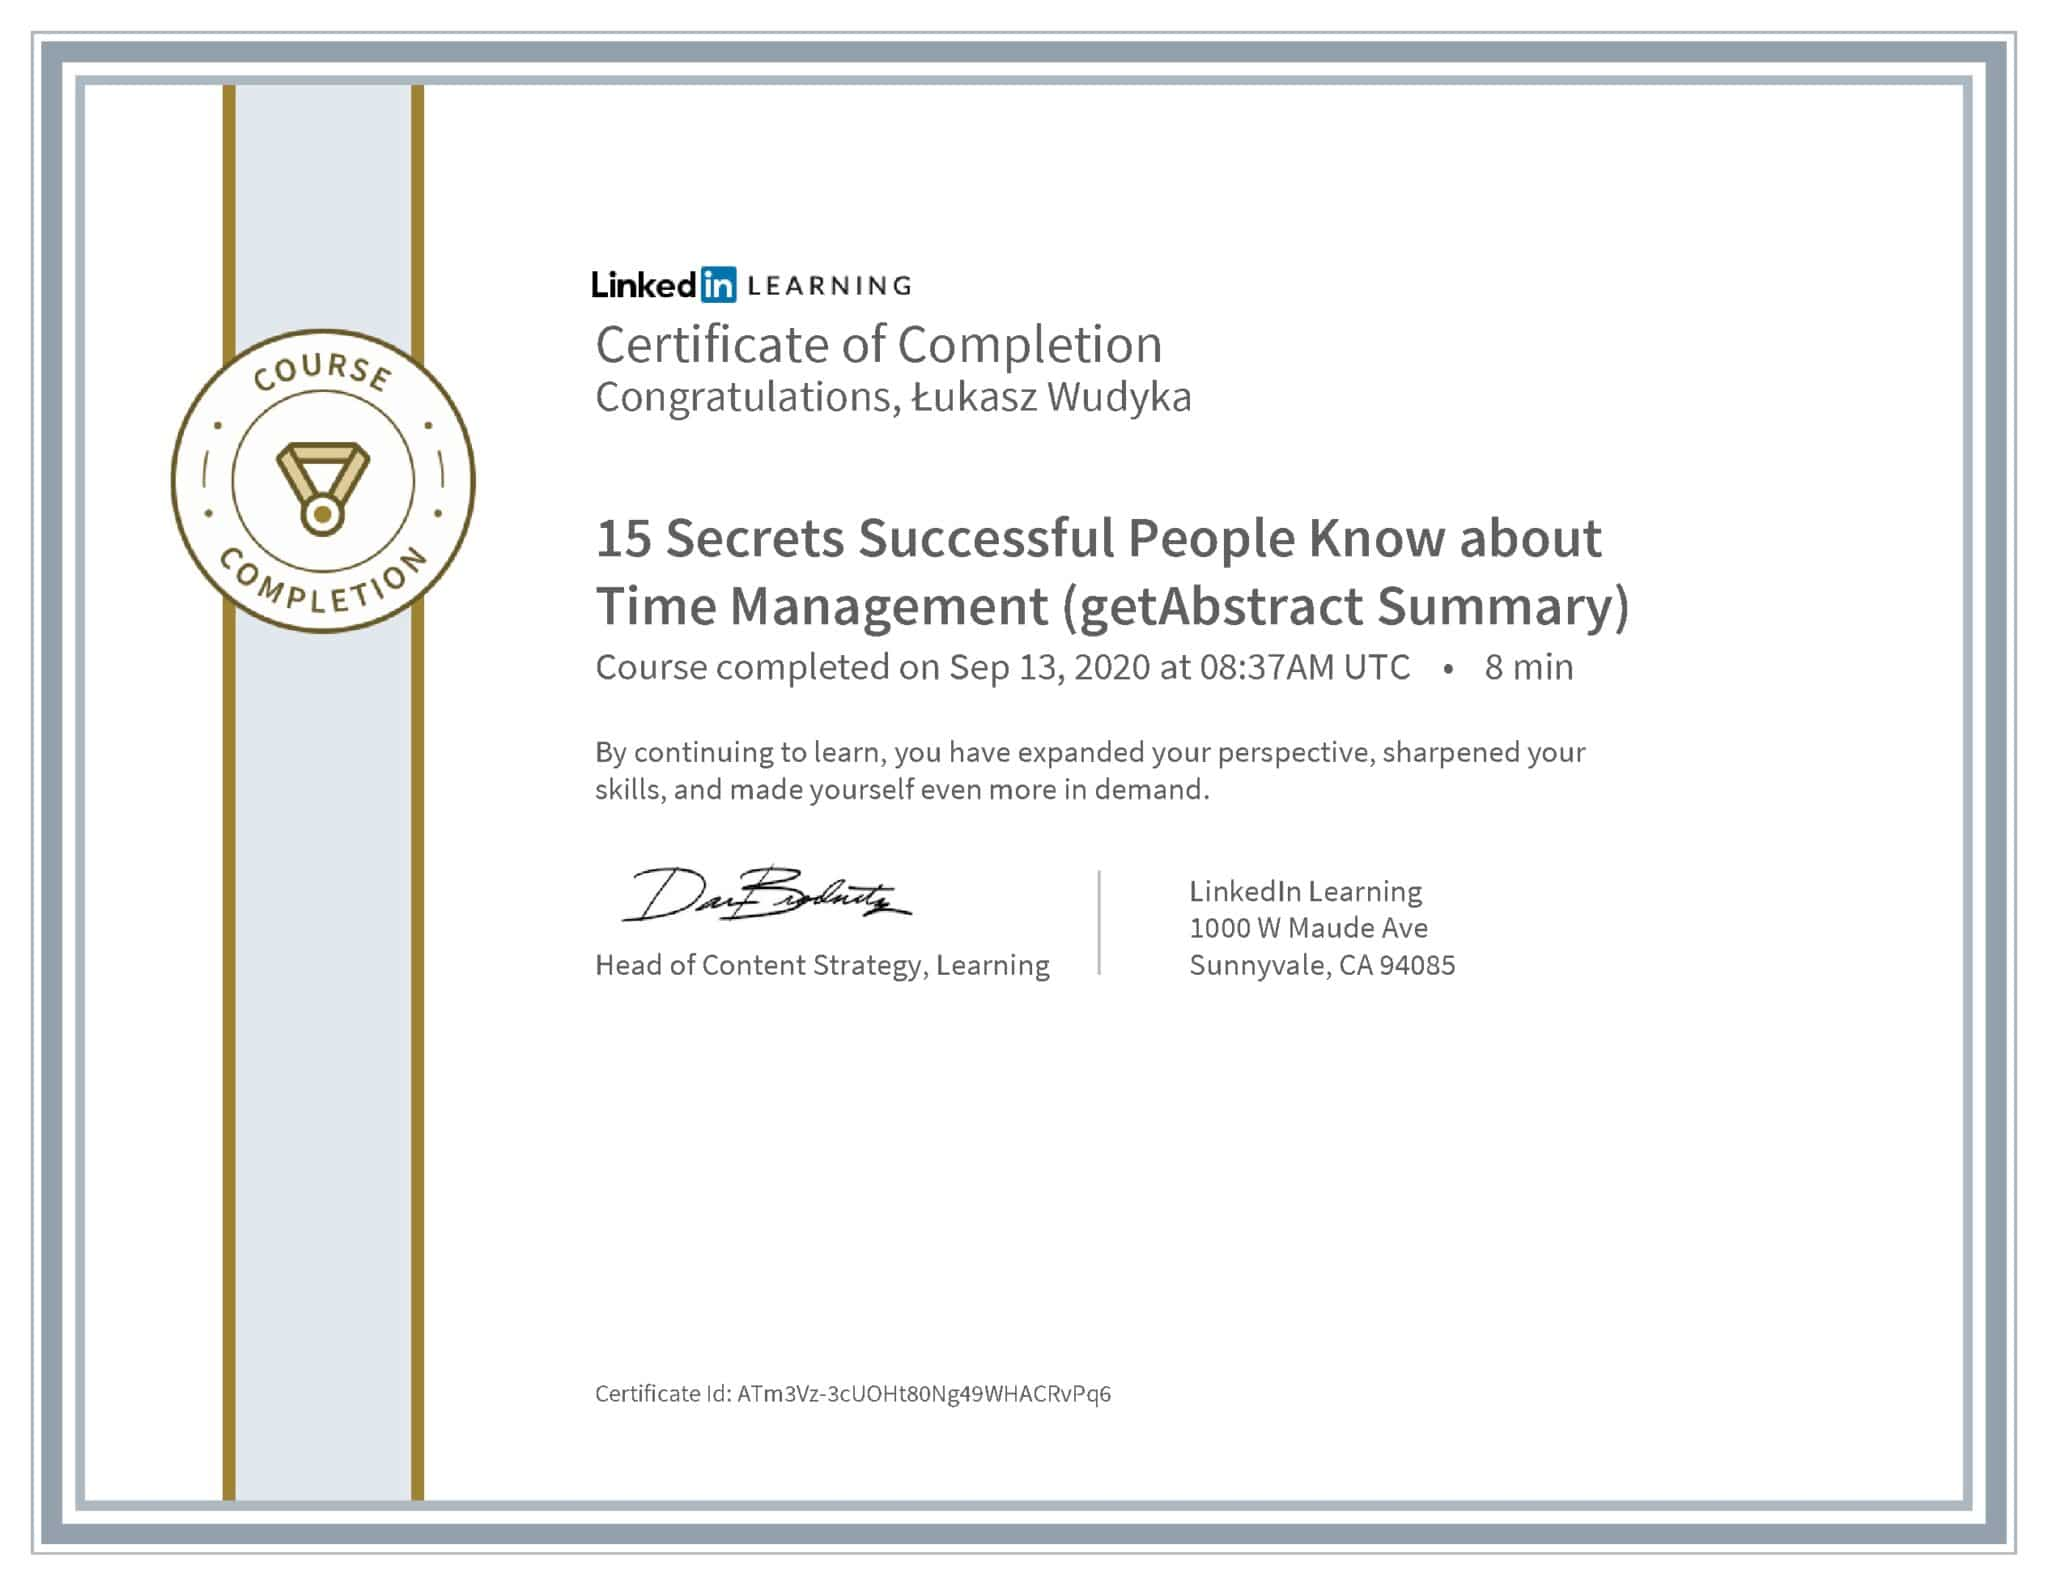 Łukasz Wudyka certyfikat LinkedIn 15 Secrets Successful People Know about Time Management (getAbstract Summary)